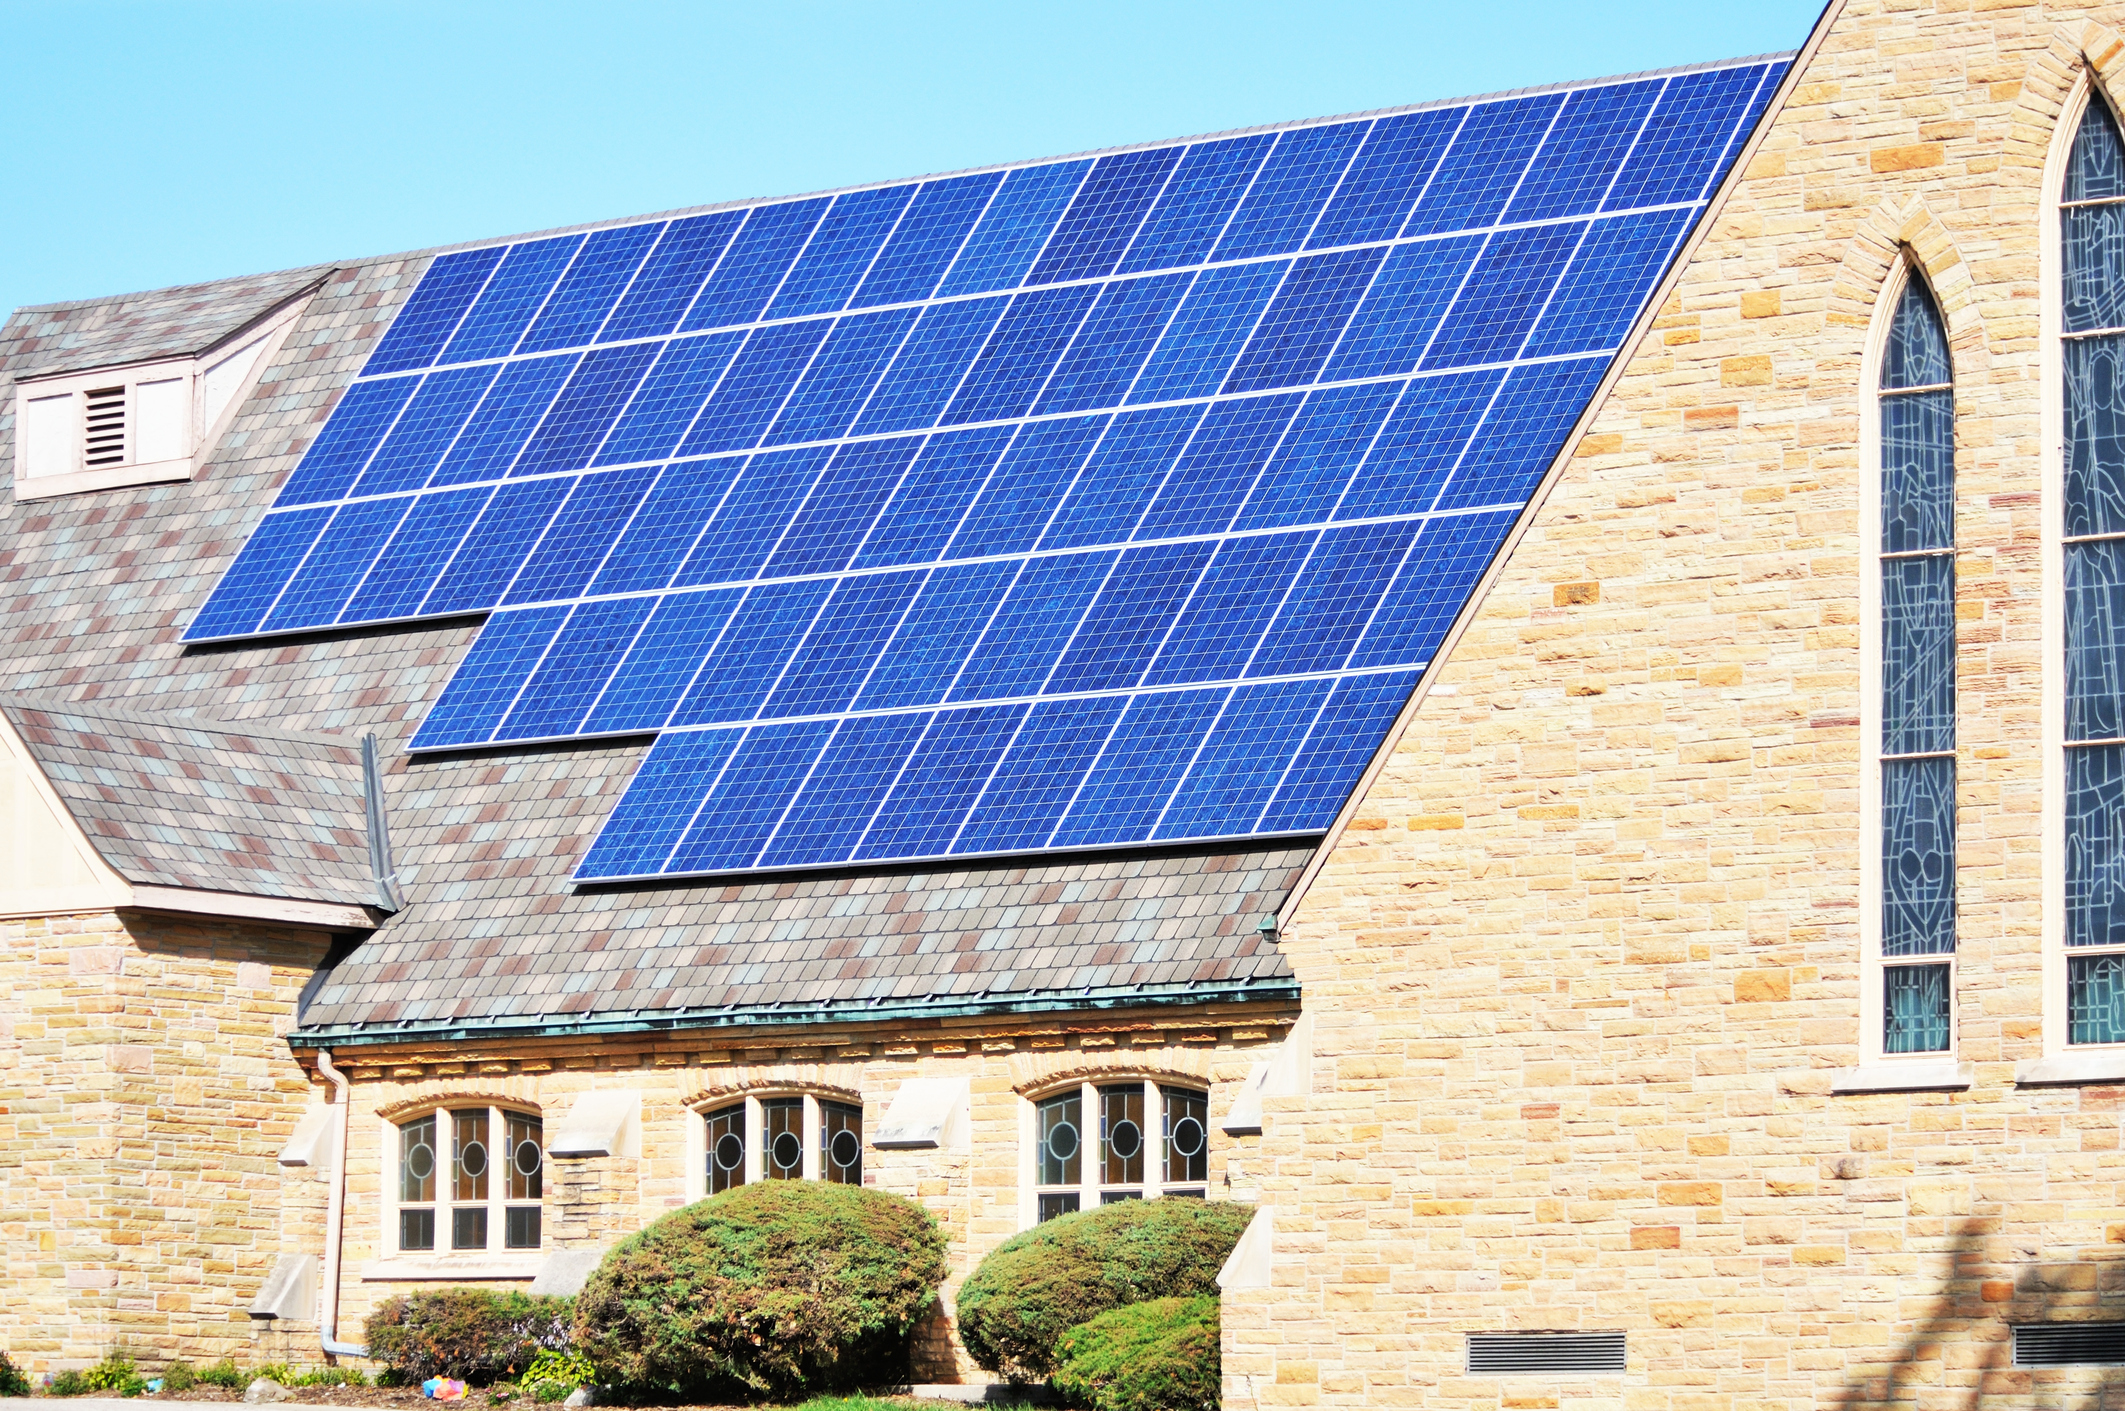 An Episcopal church with solar panels on the roof.